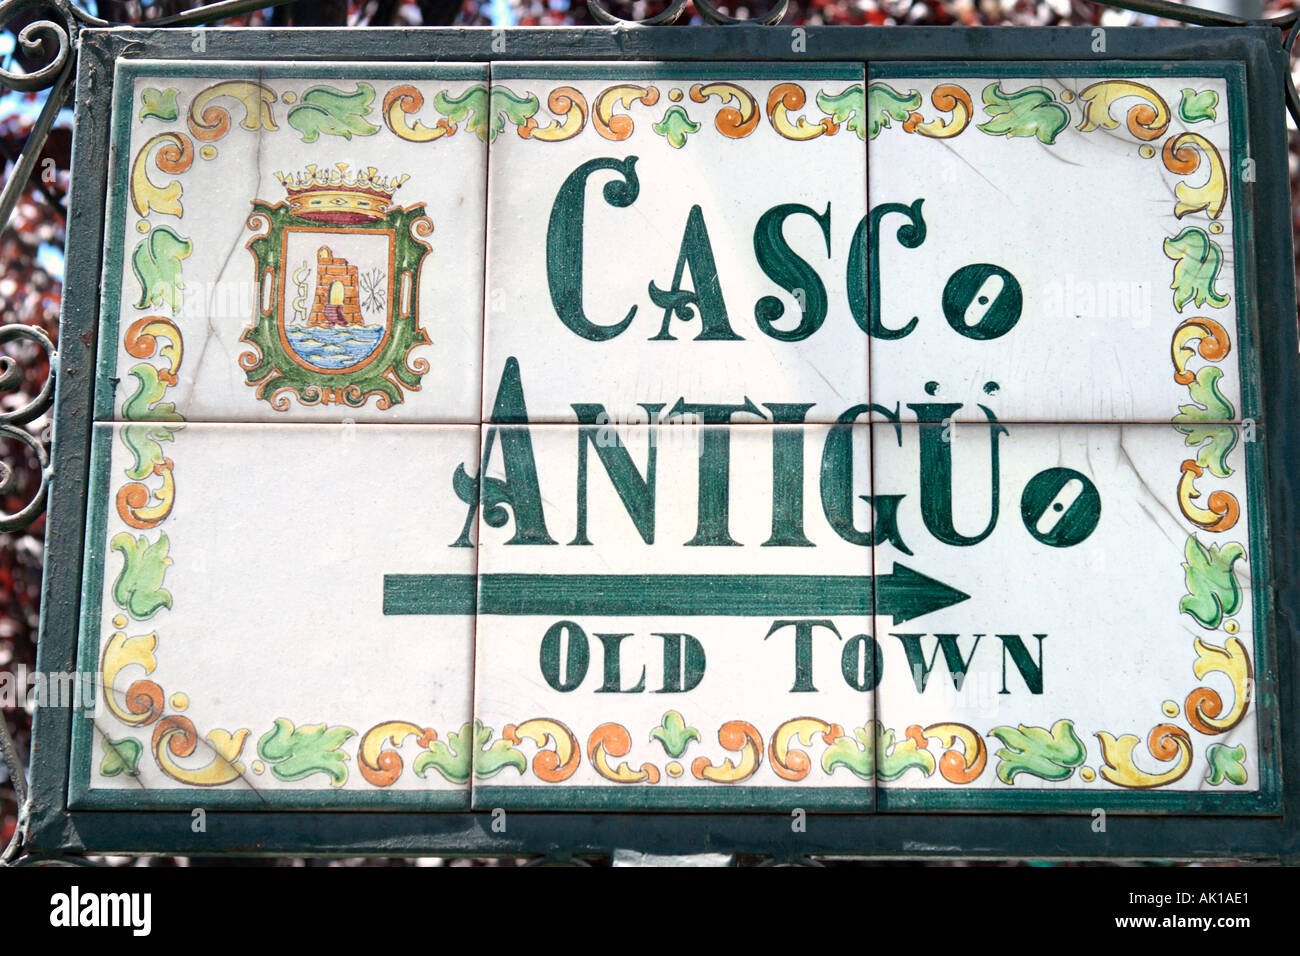 Street Sign for the Old Town (Casco Antiguo), Marbella, Costa del Sol, Andalucia, Spain - Stock Image